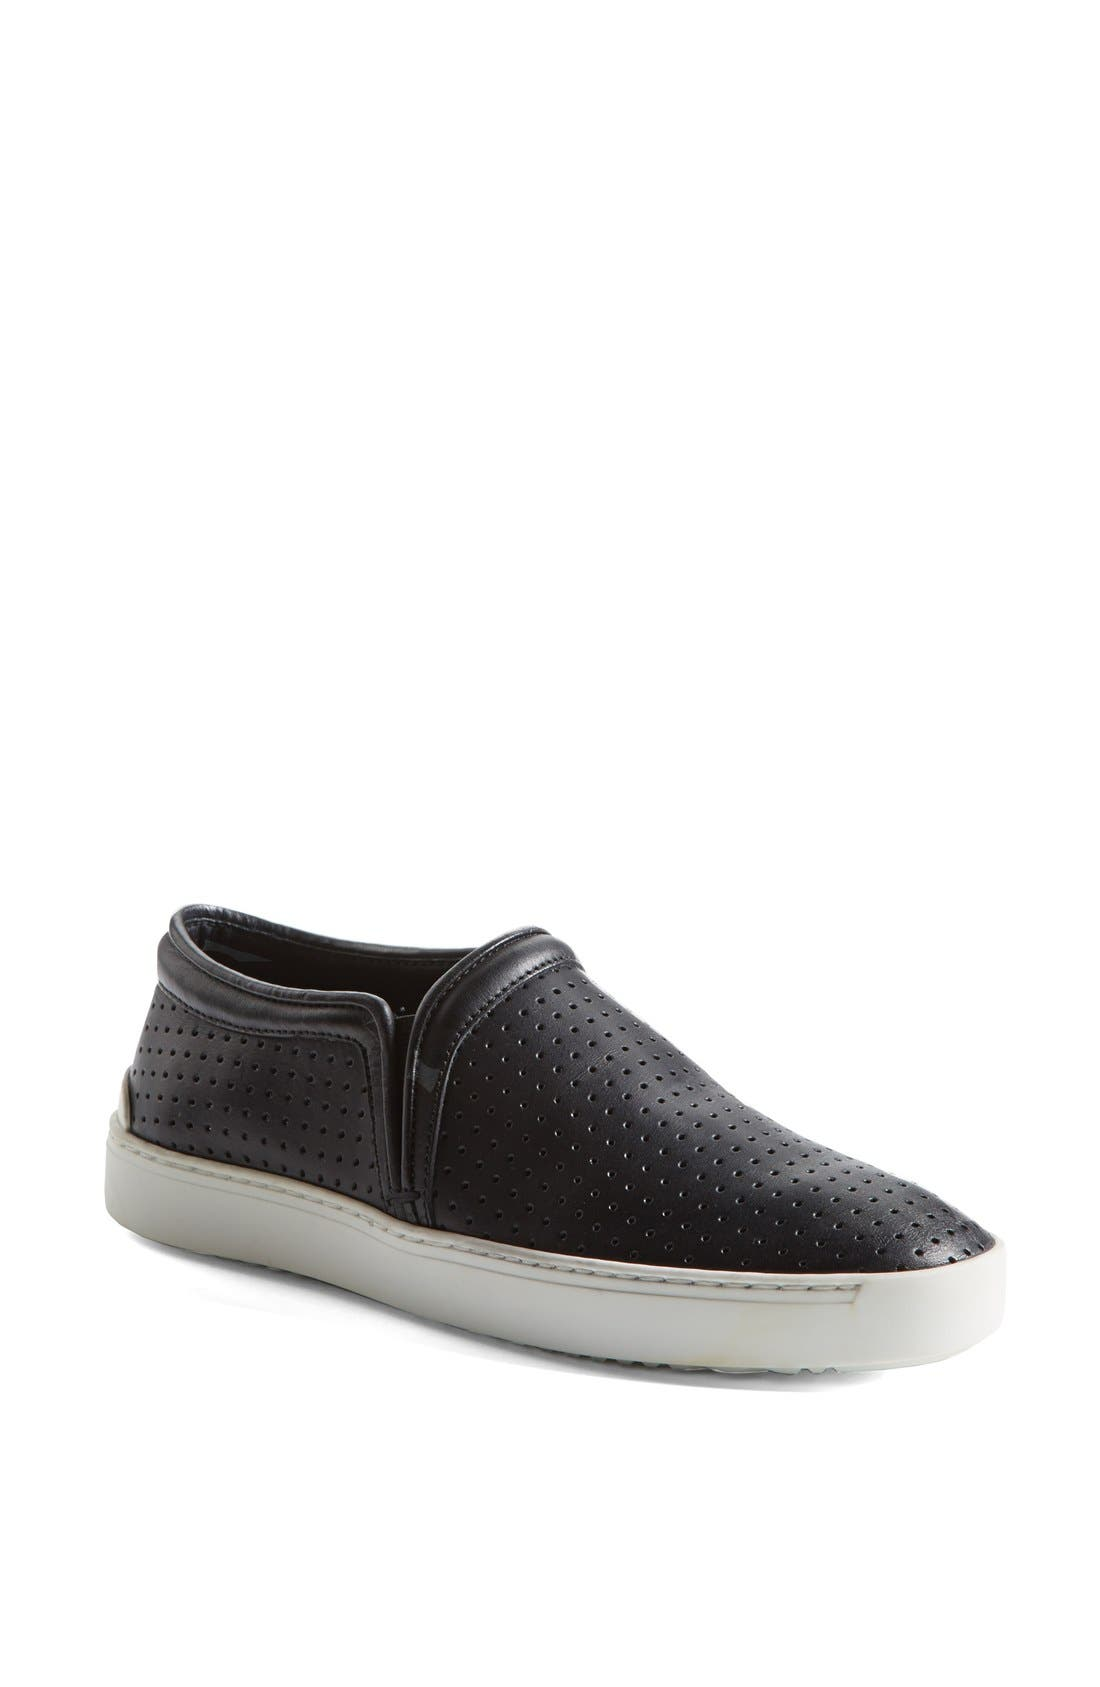 Main Image - rag & bone 'Kent' Perforated Leather Slip-On